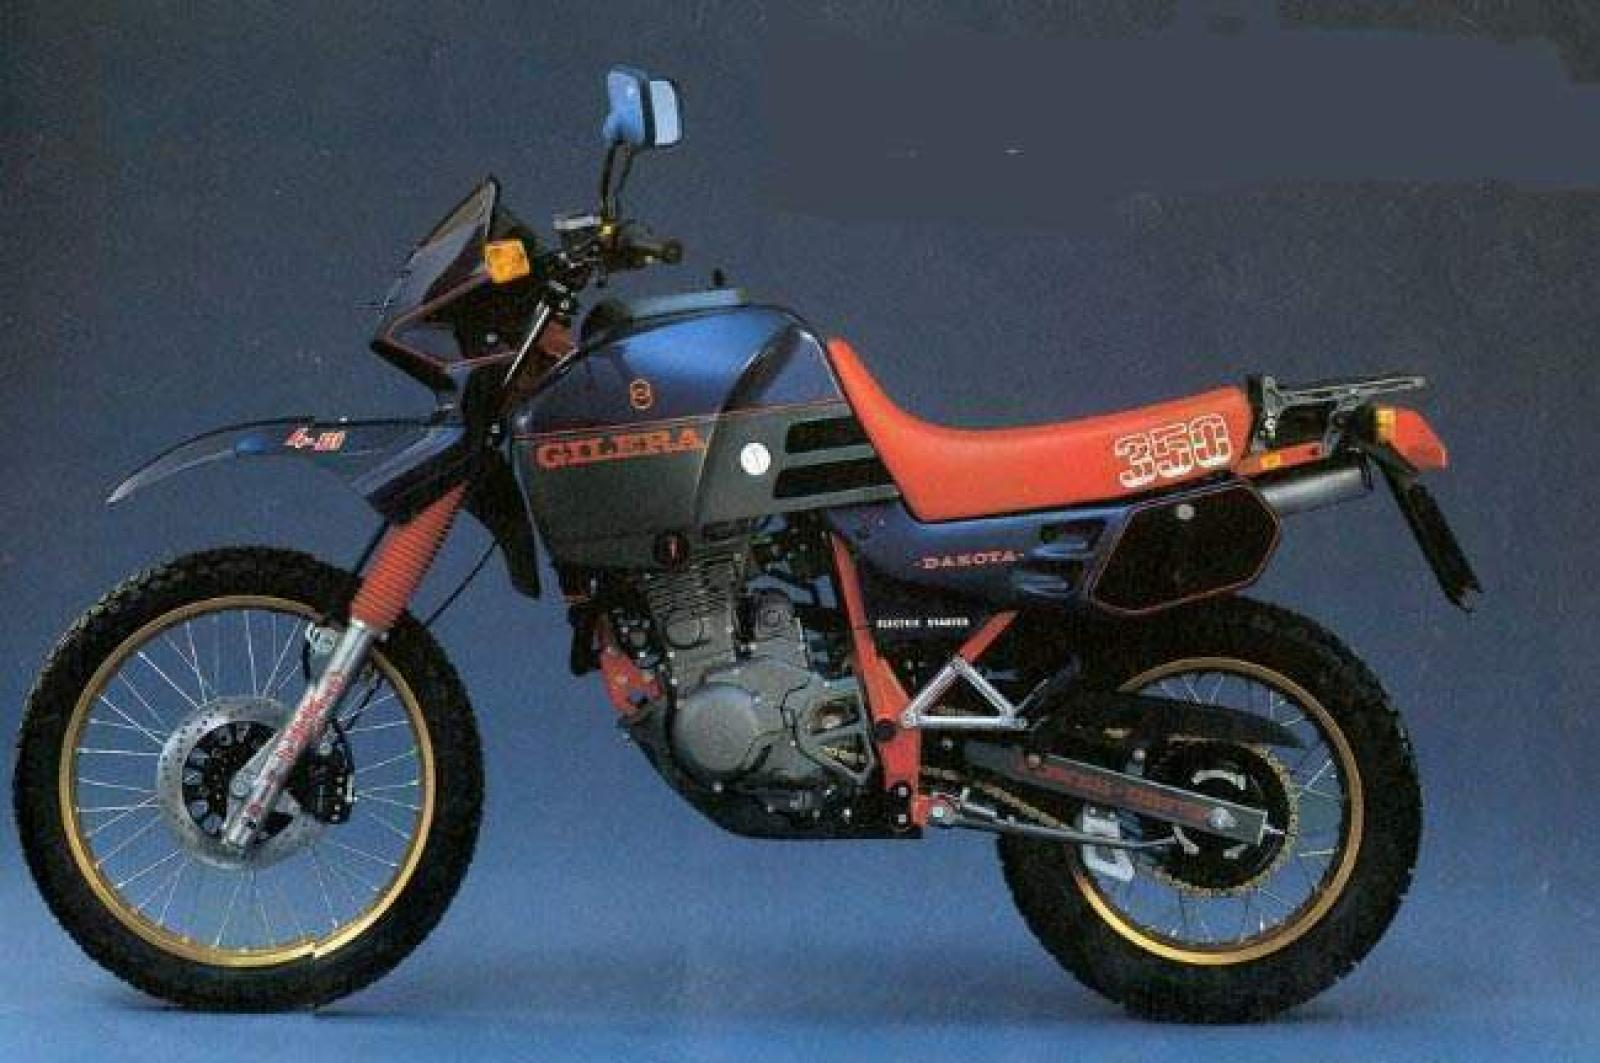 Gilera 350 Dakota 1987 images #158459